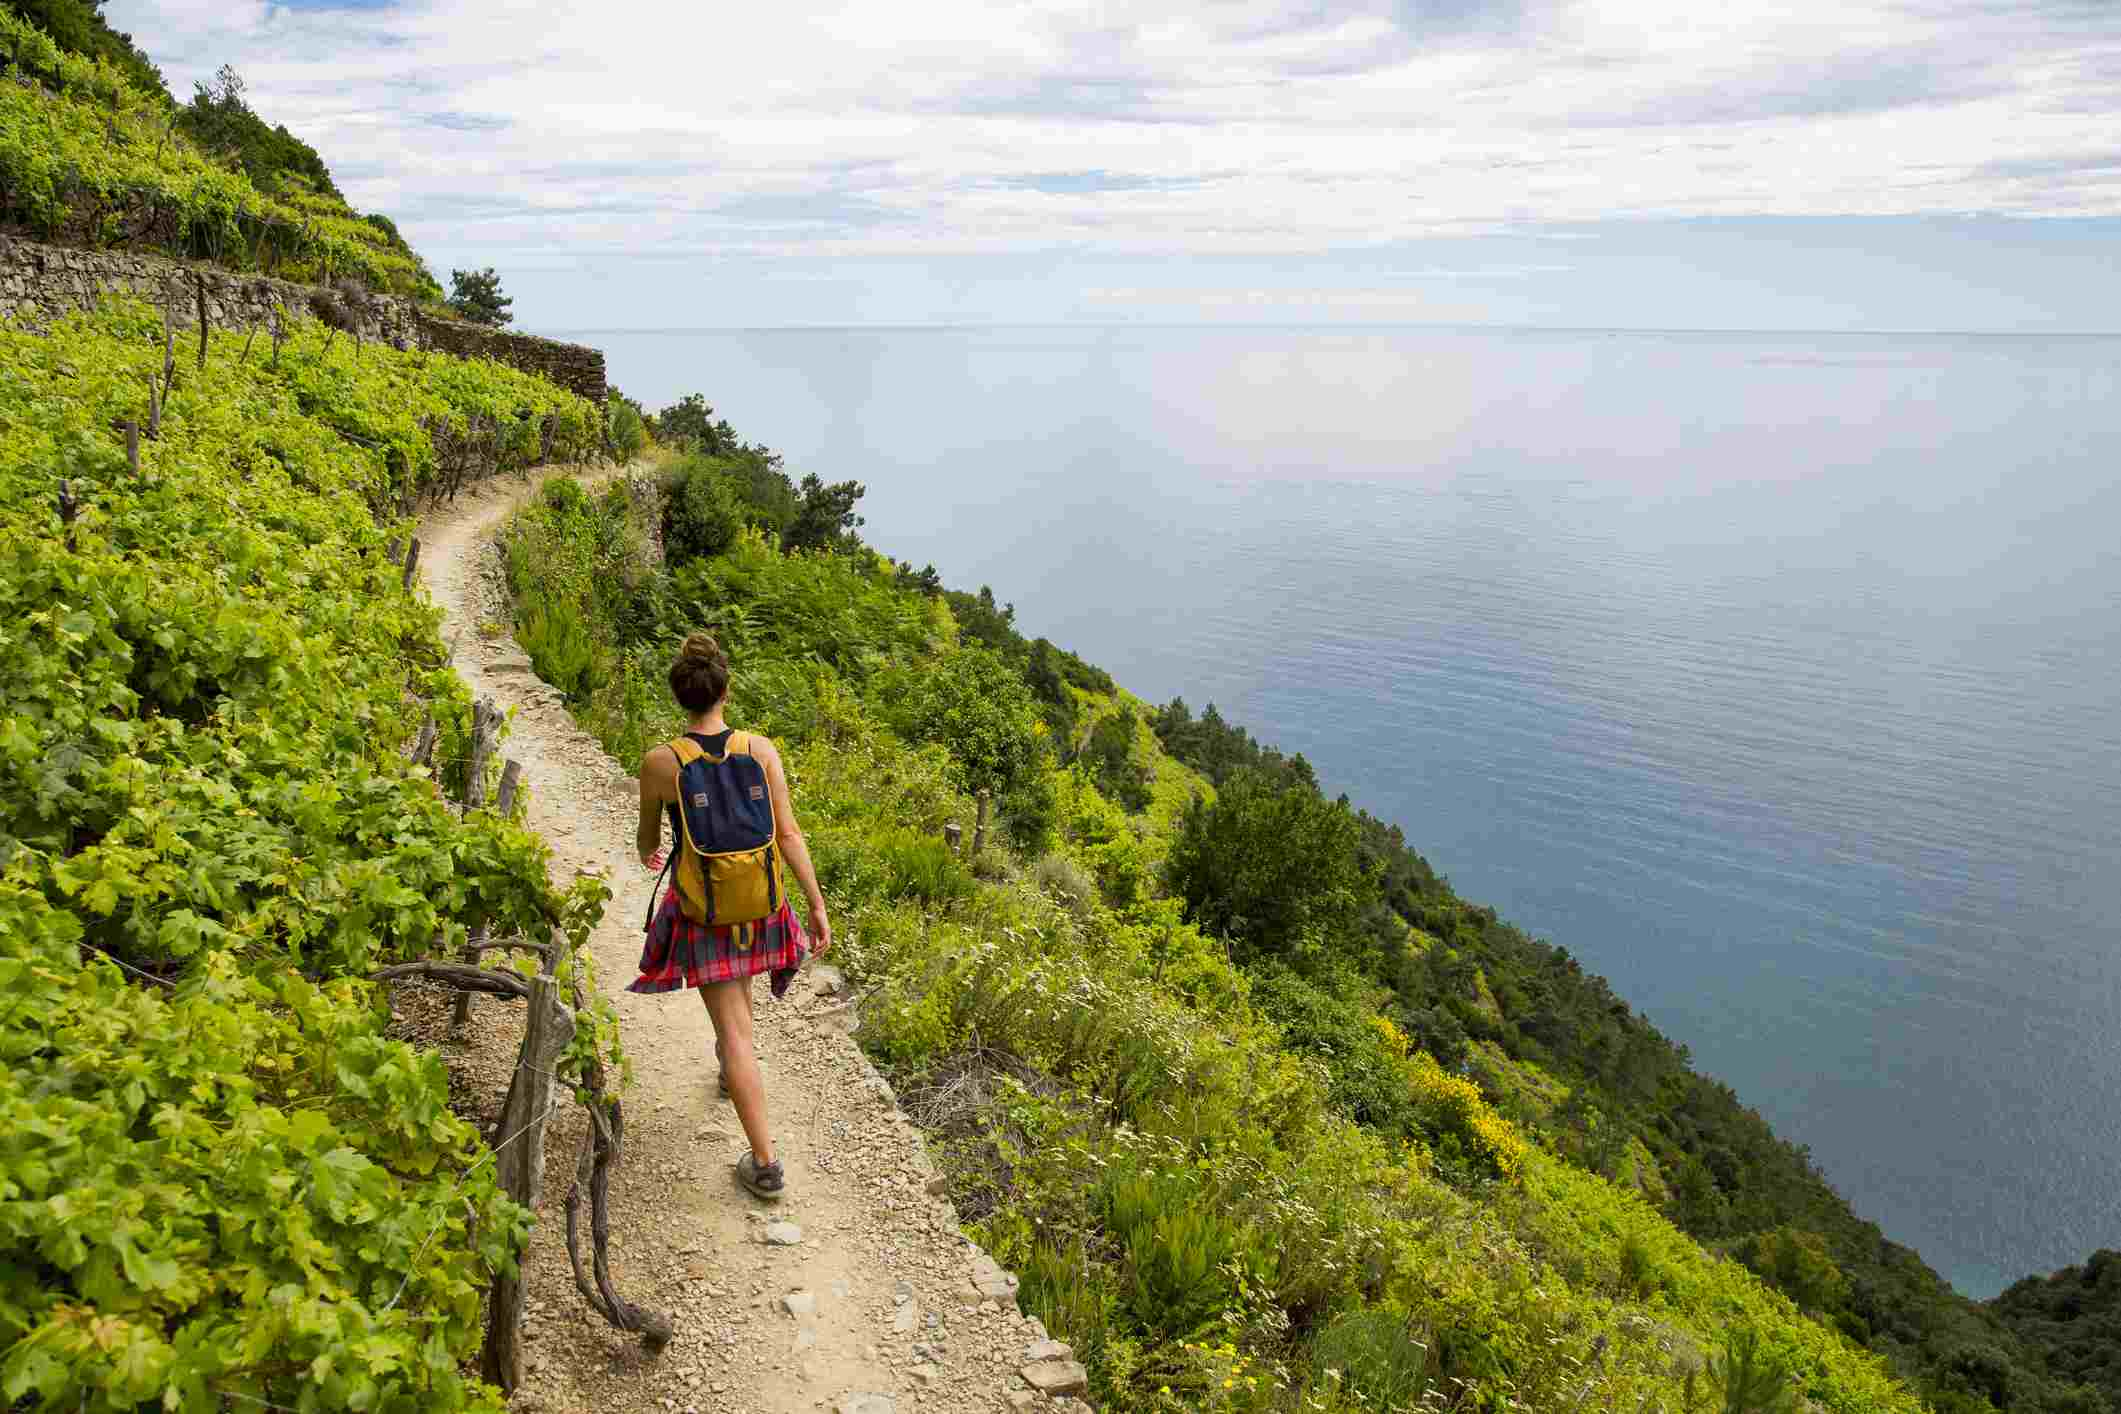 Hiking the Cinque Terre Trails in Italy